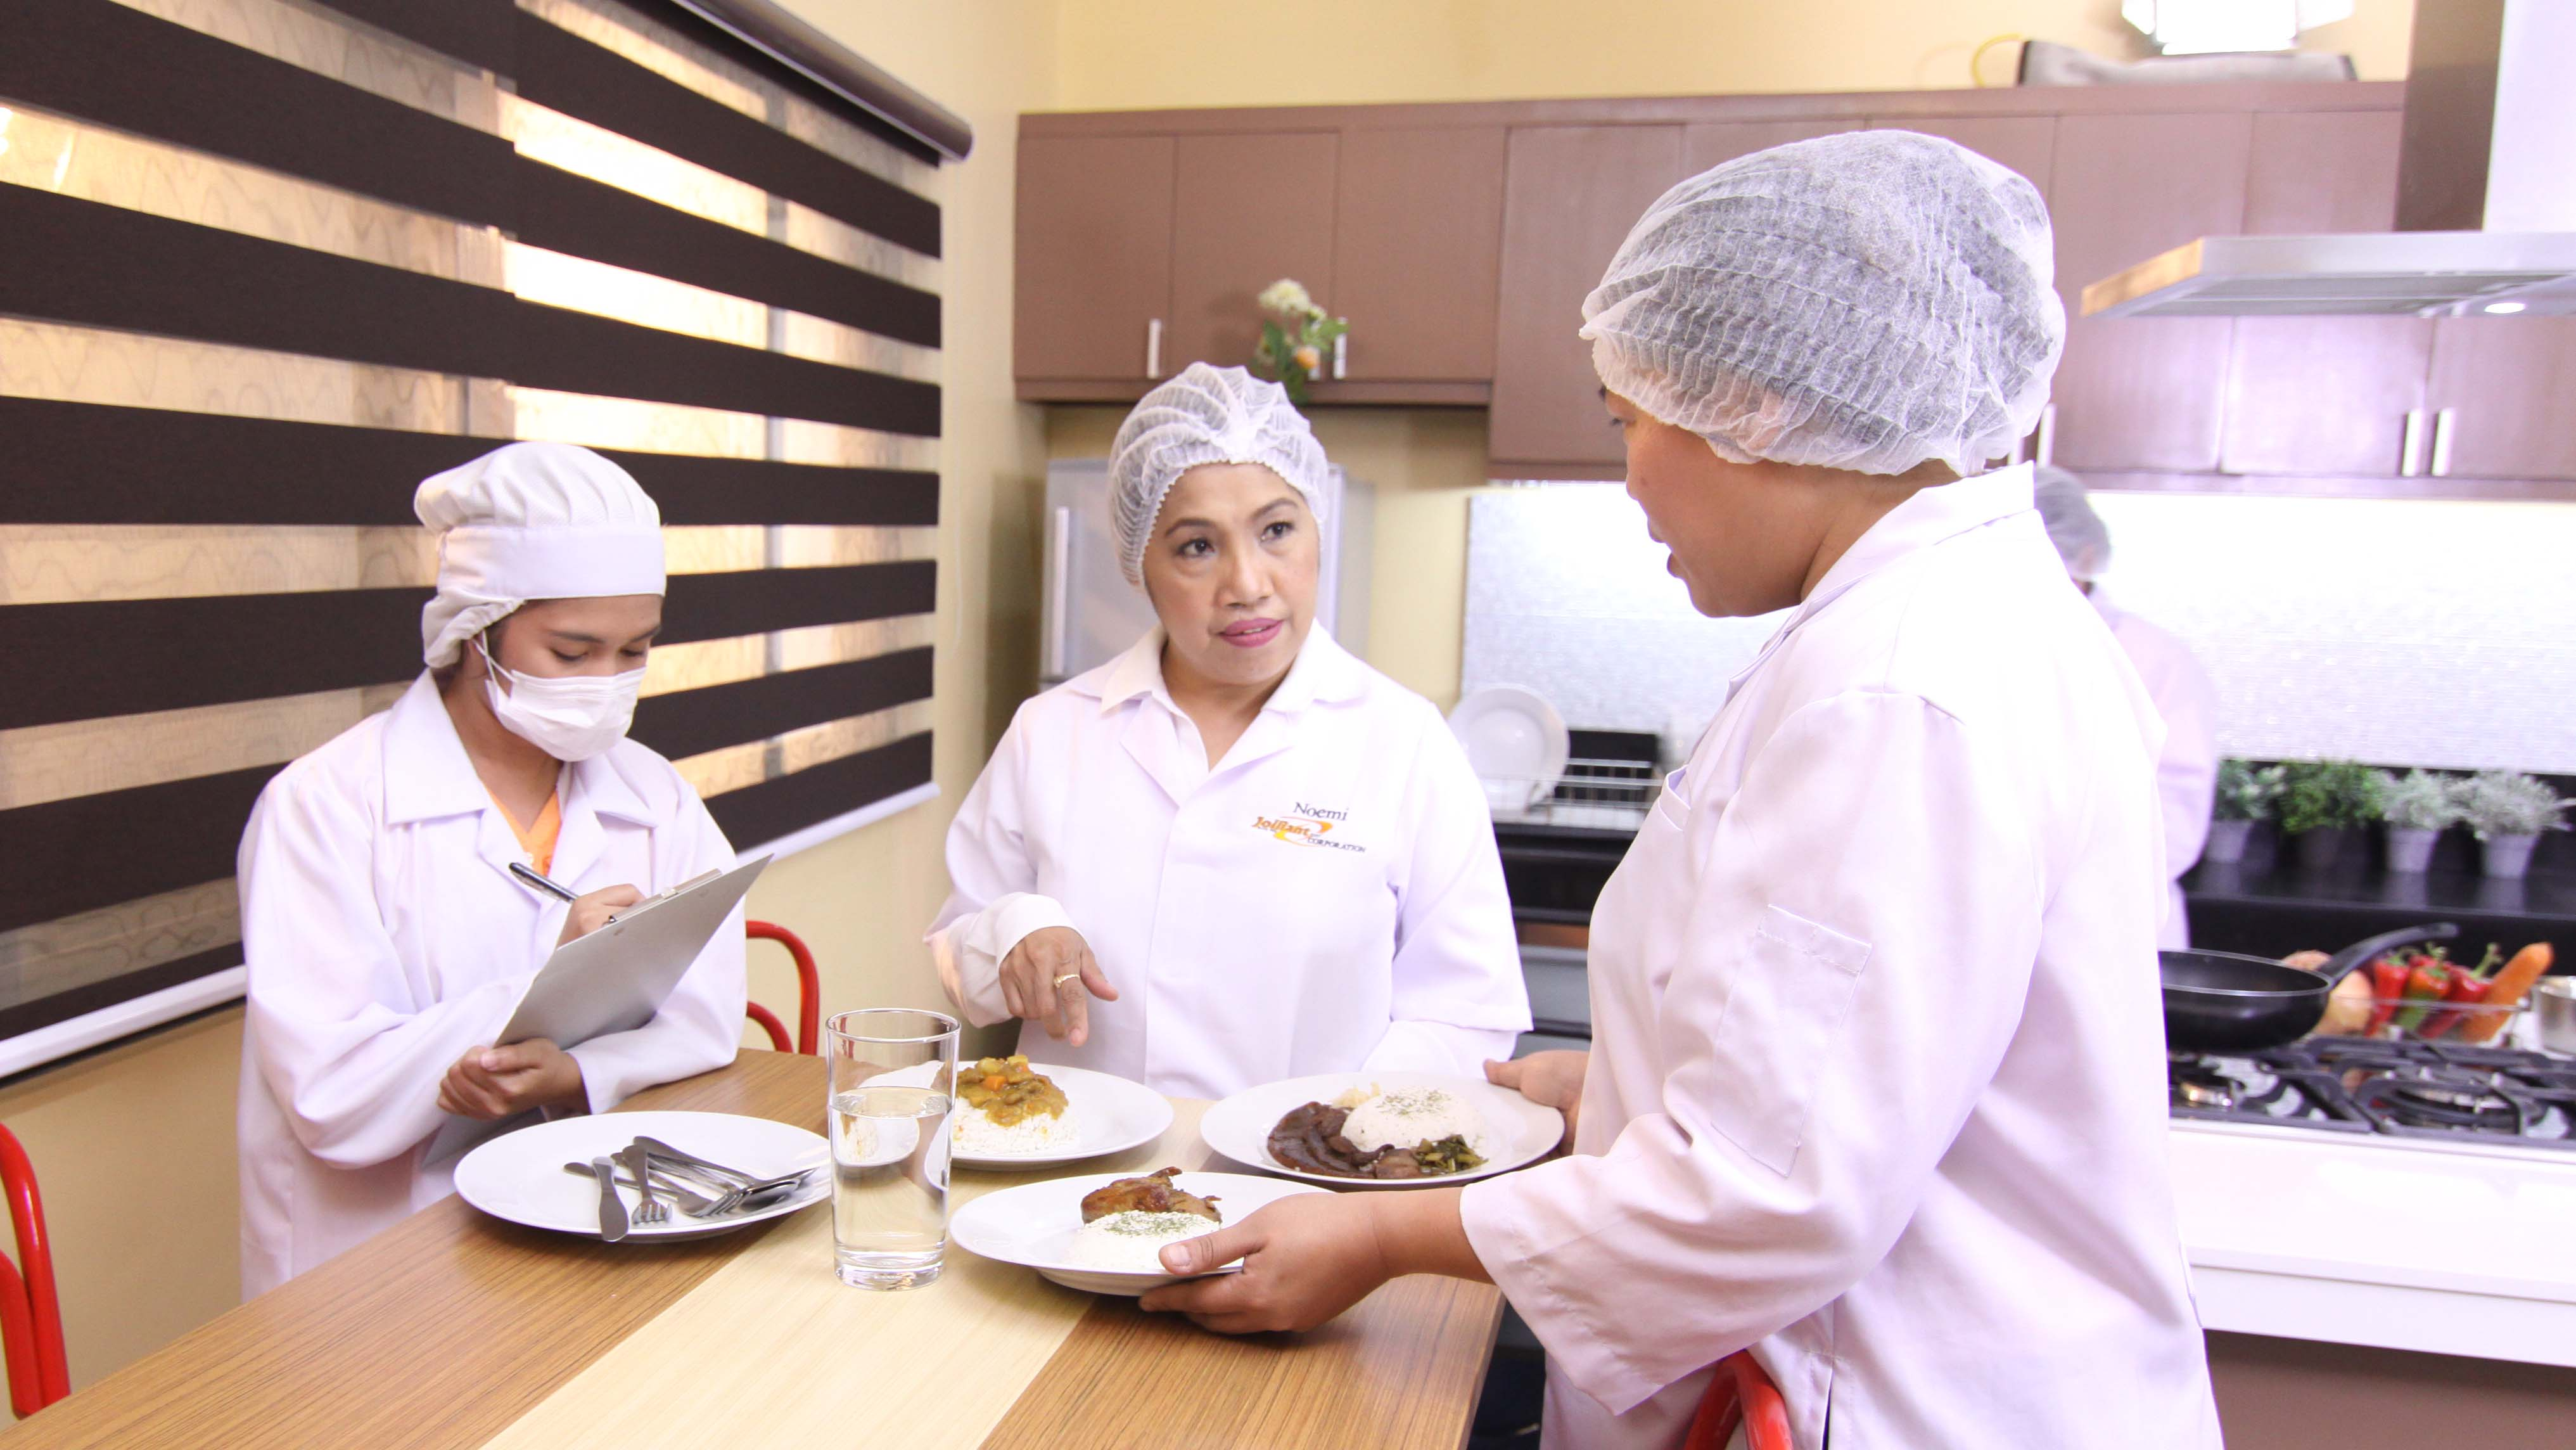 Jolliant RNN Corporation provides meals to the 7-Eleven chain. Each recipe is tested and developed by its president and CEO, Noemi Dominguez.